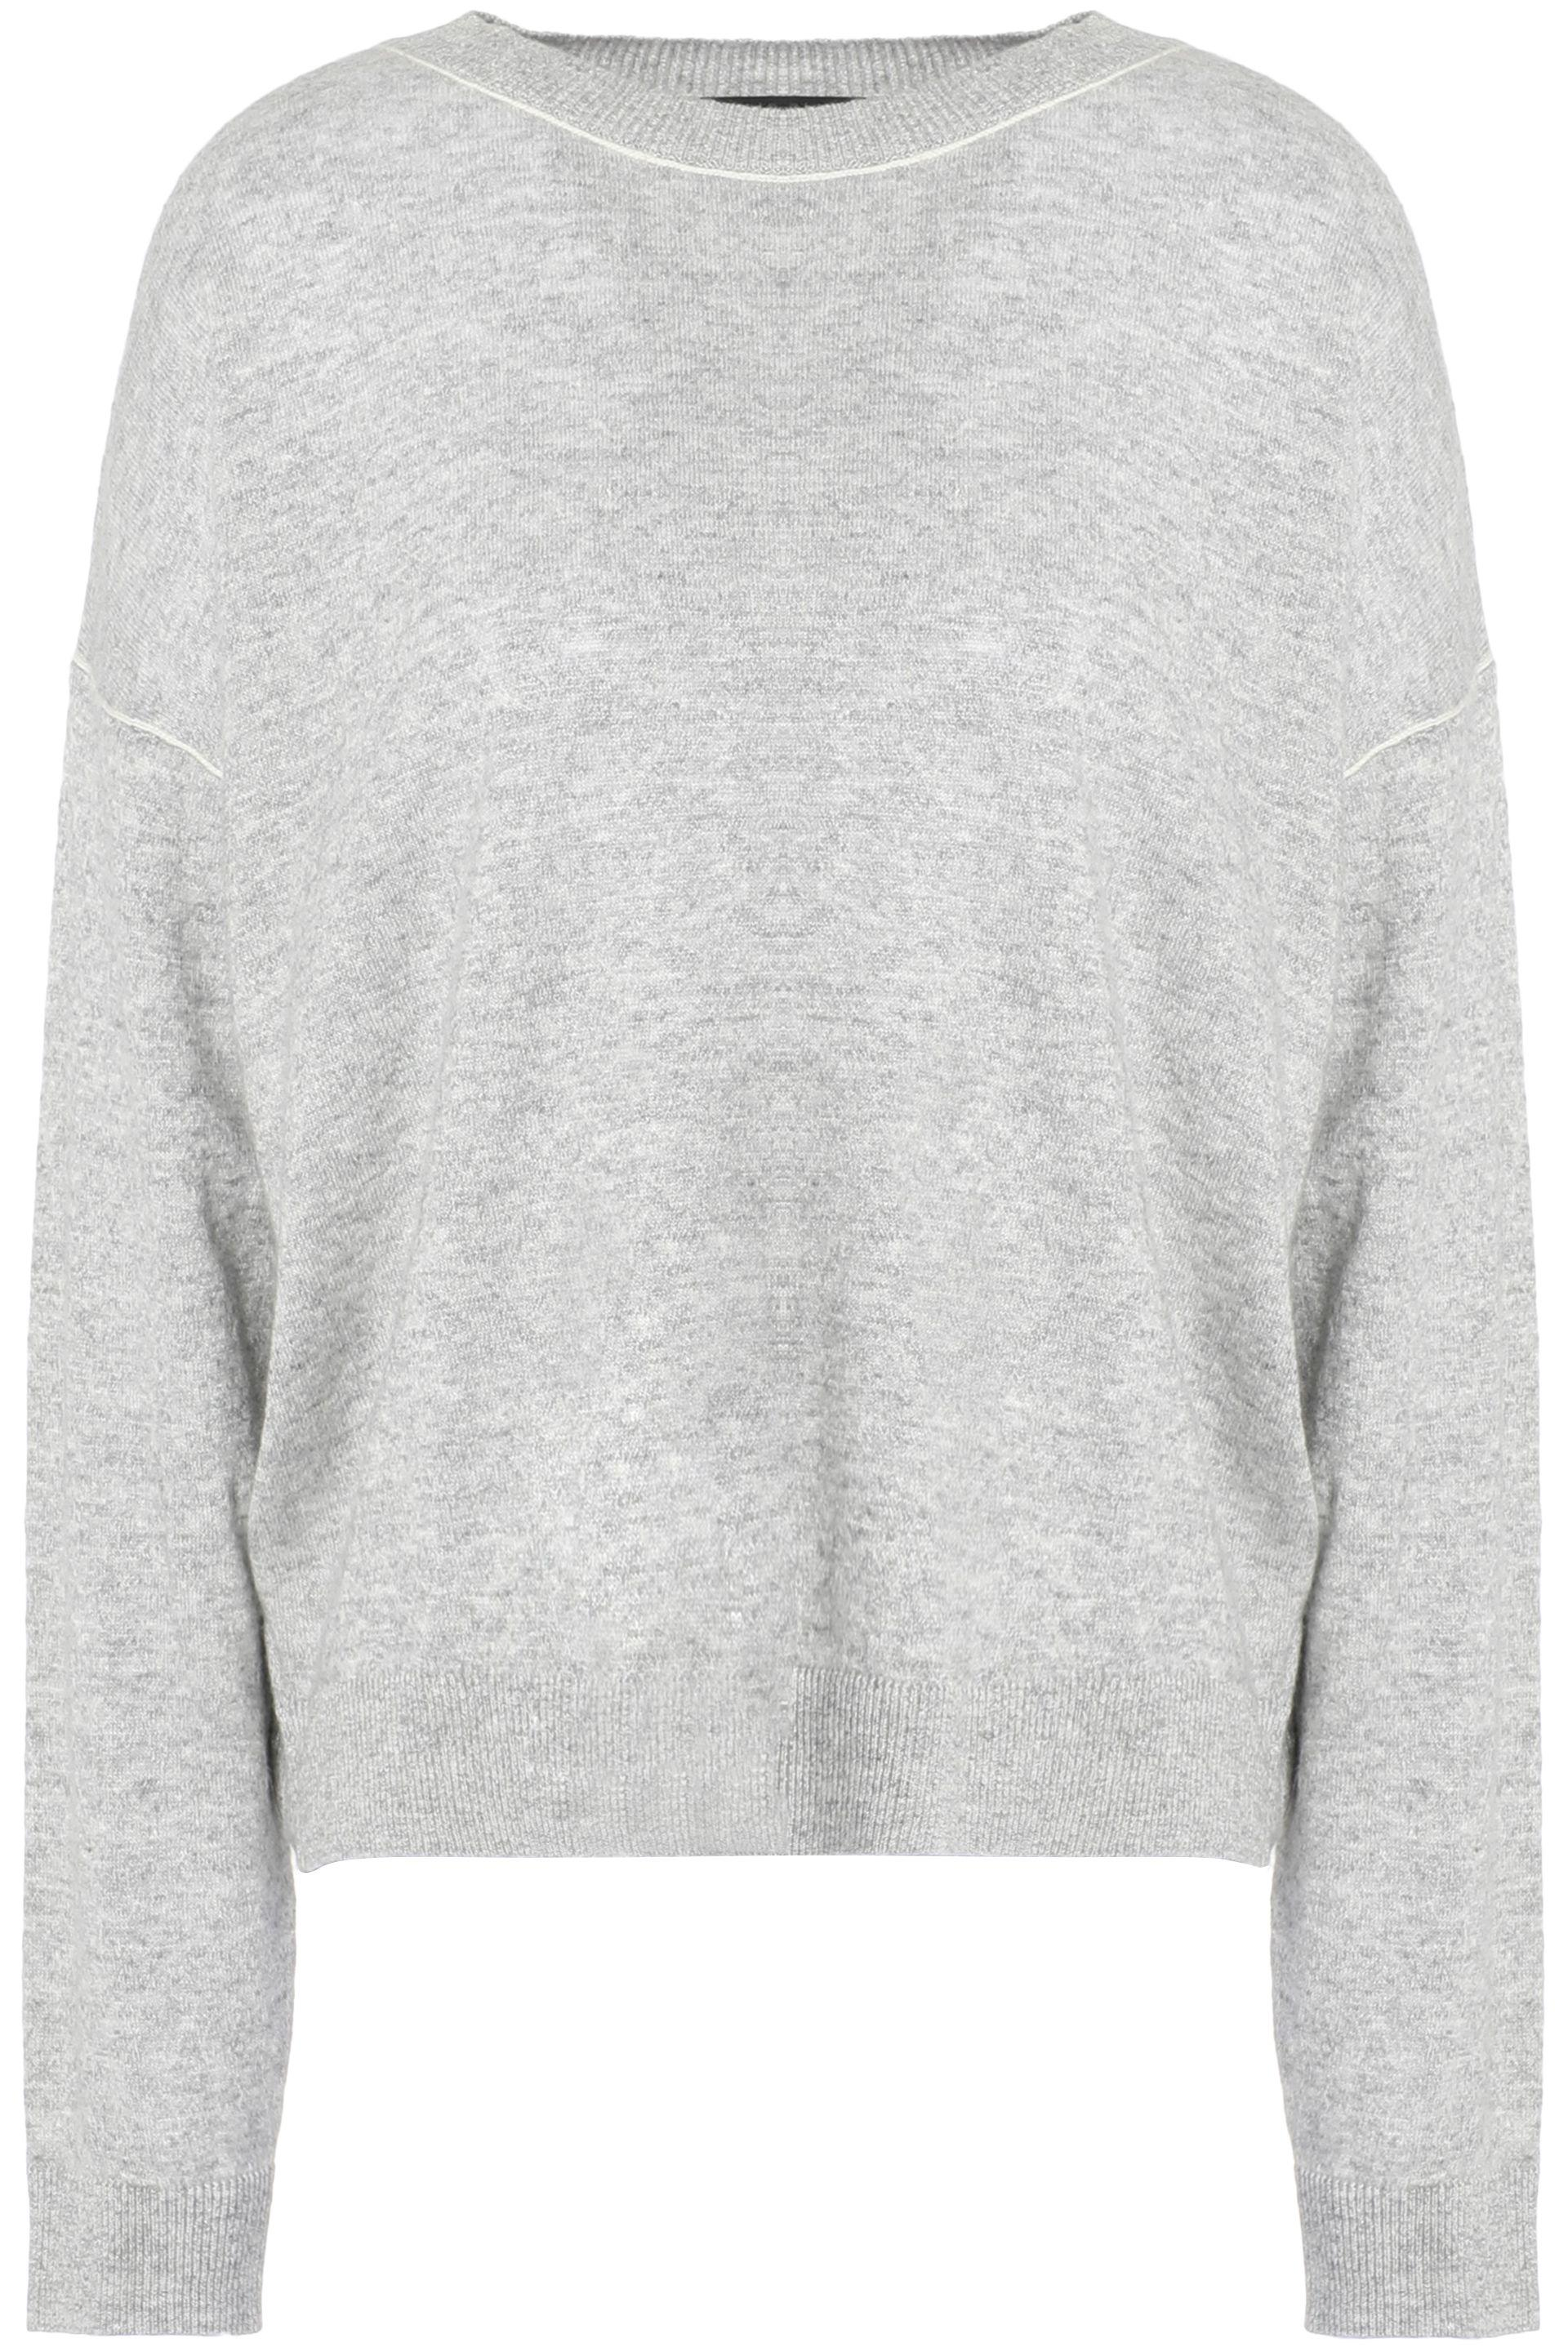 Theory Woman Cashmere And Linen-blend Sweater Light Gray Size L Theory Get To Buy Cheap Price Outlet Cheapest Clearance Sale Online ixDINAHise